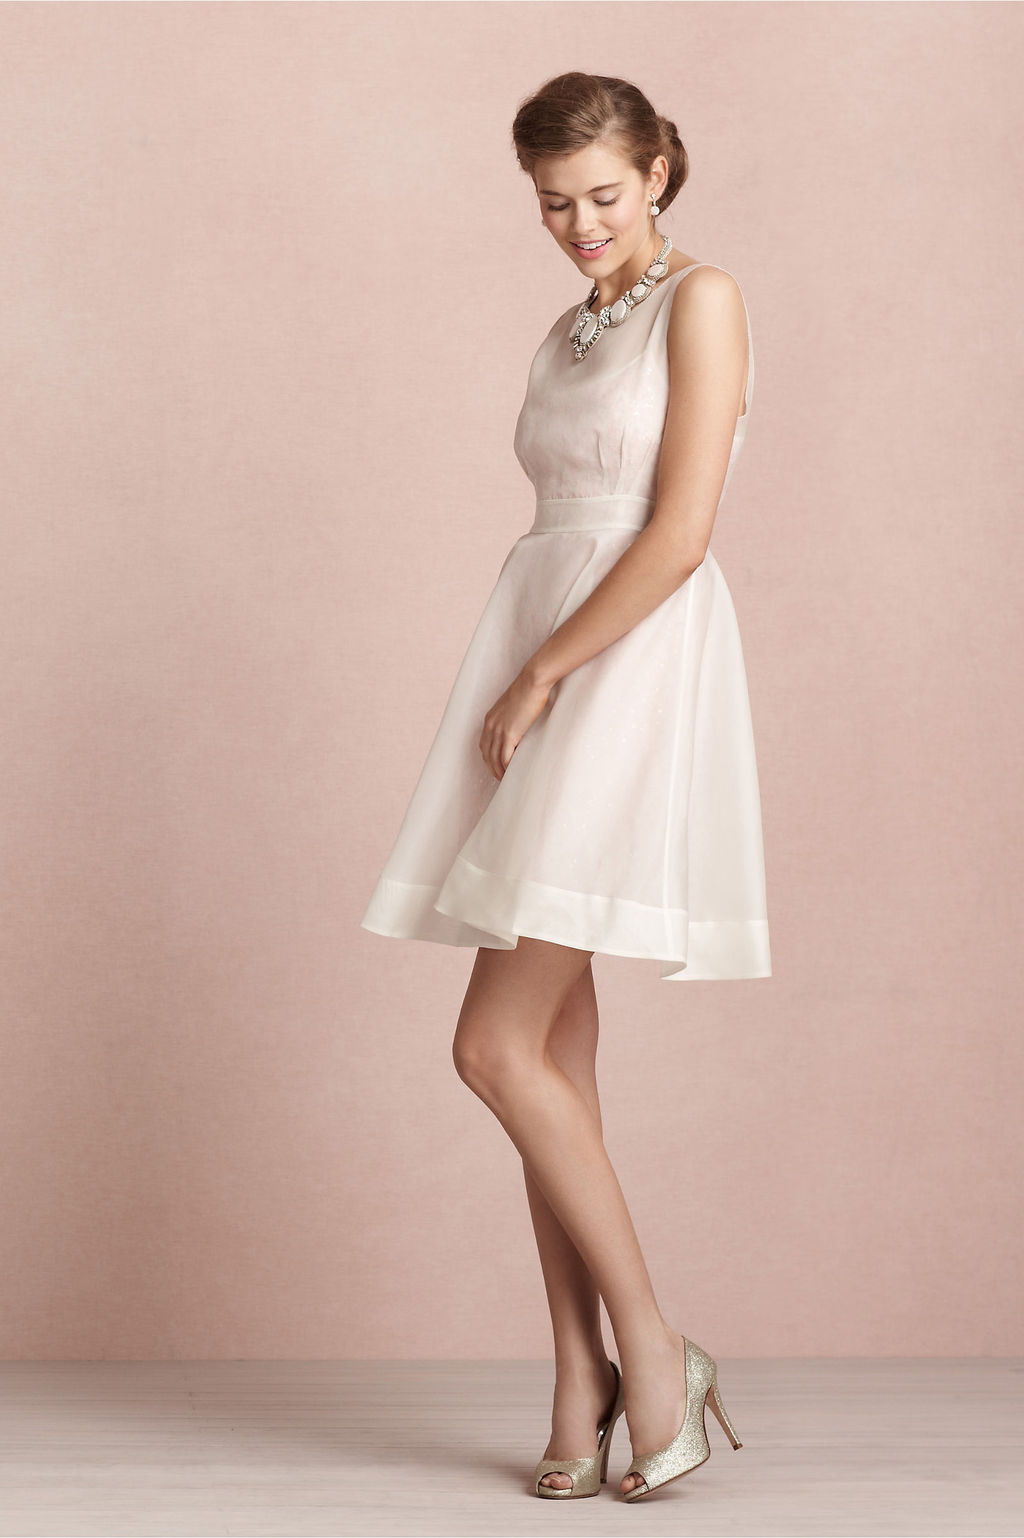 Covetable-bridesmaid-dresses-from-bhldn-2013-bridal-party-style-sheer-ivory.full